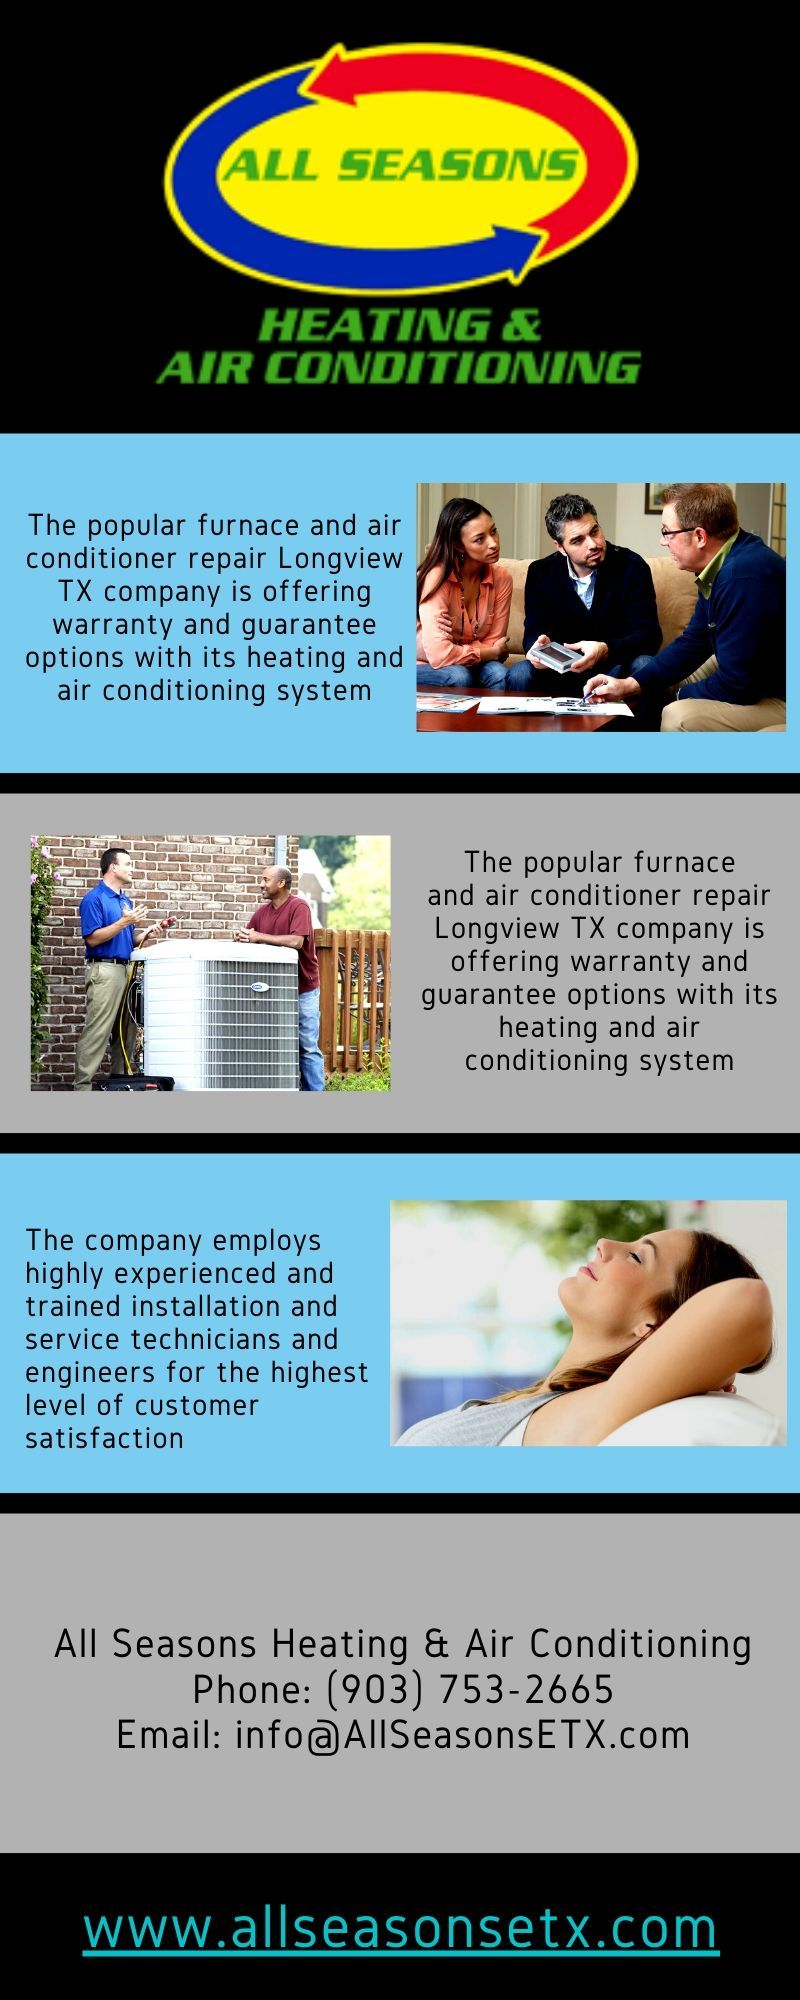 All Seasons Heating & Air Conditioning is a licensed